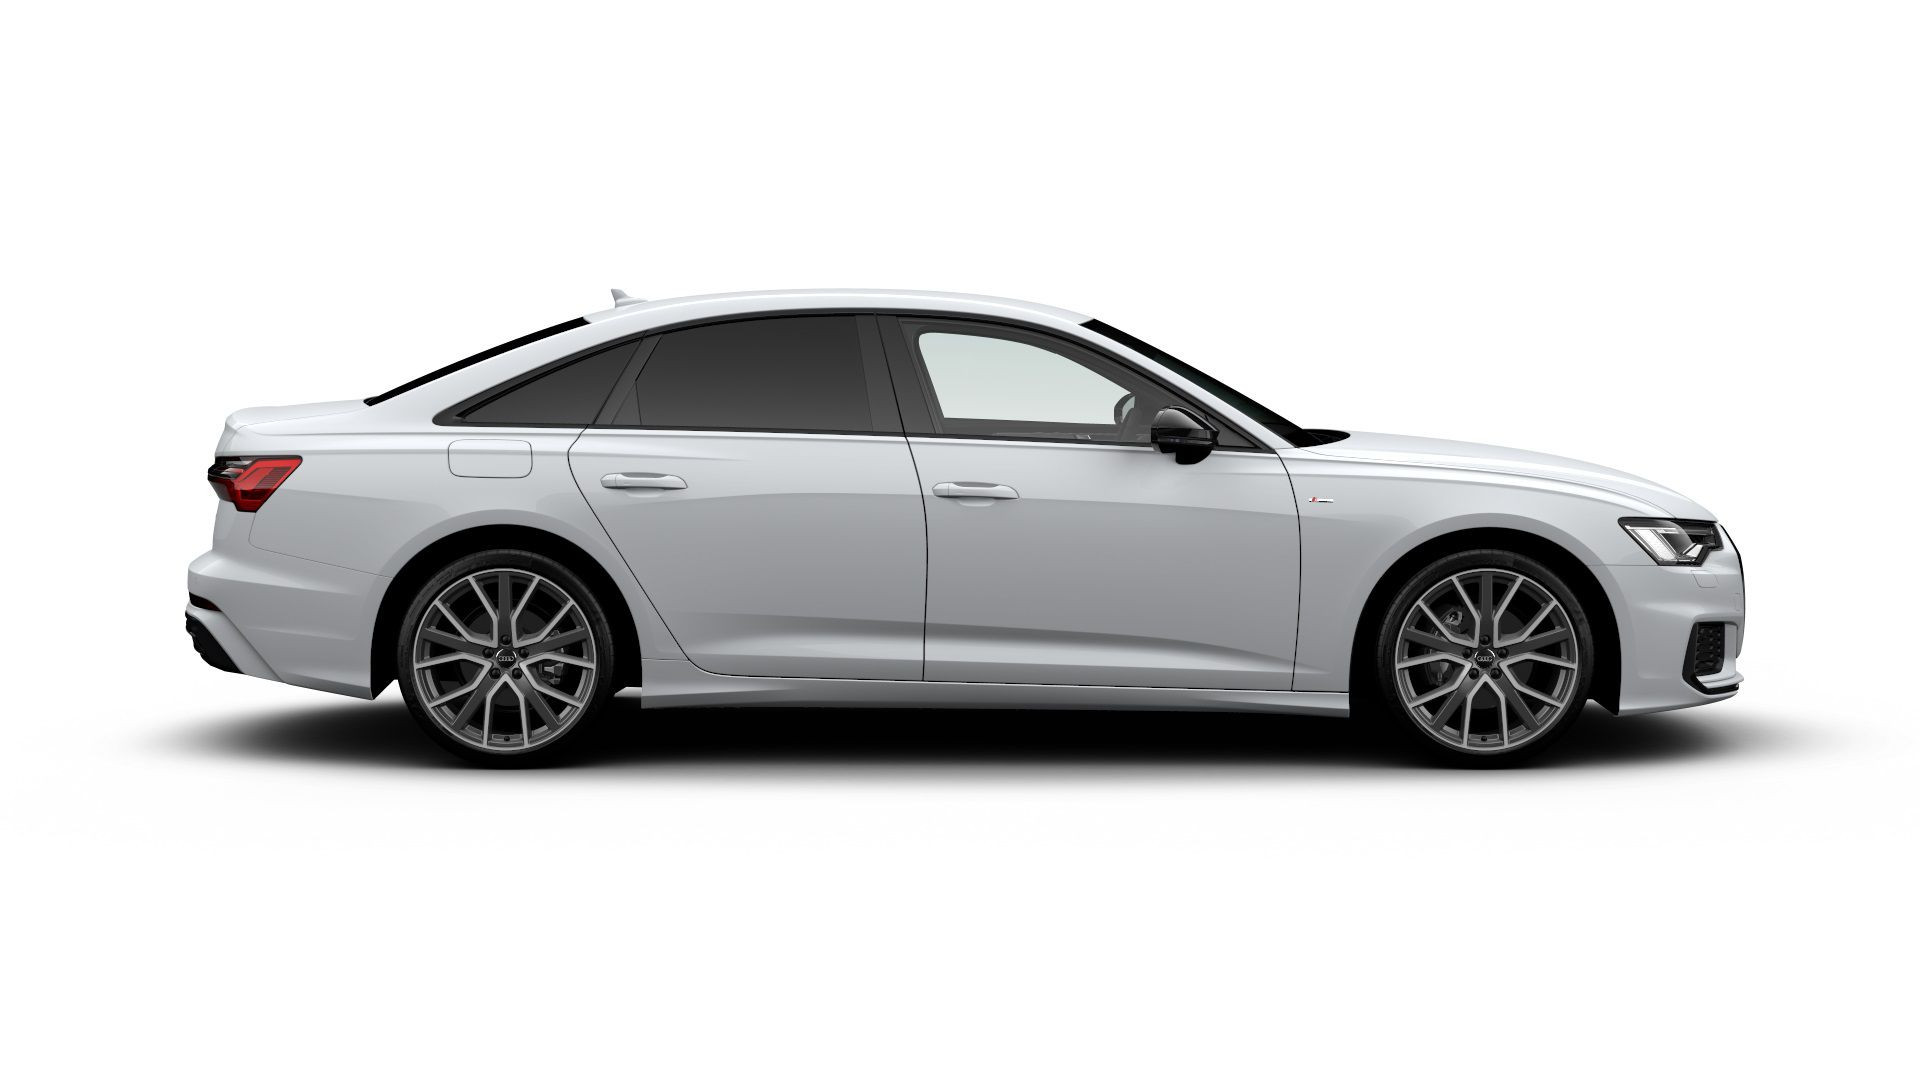 side view of Audi Black edition A6